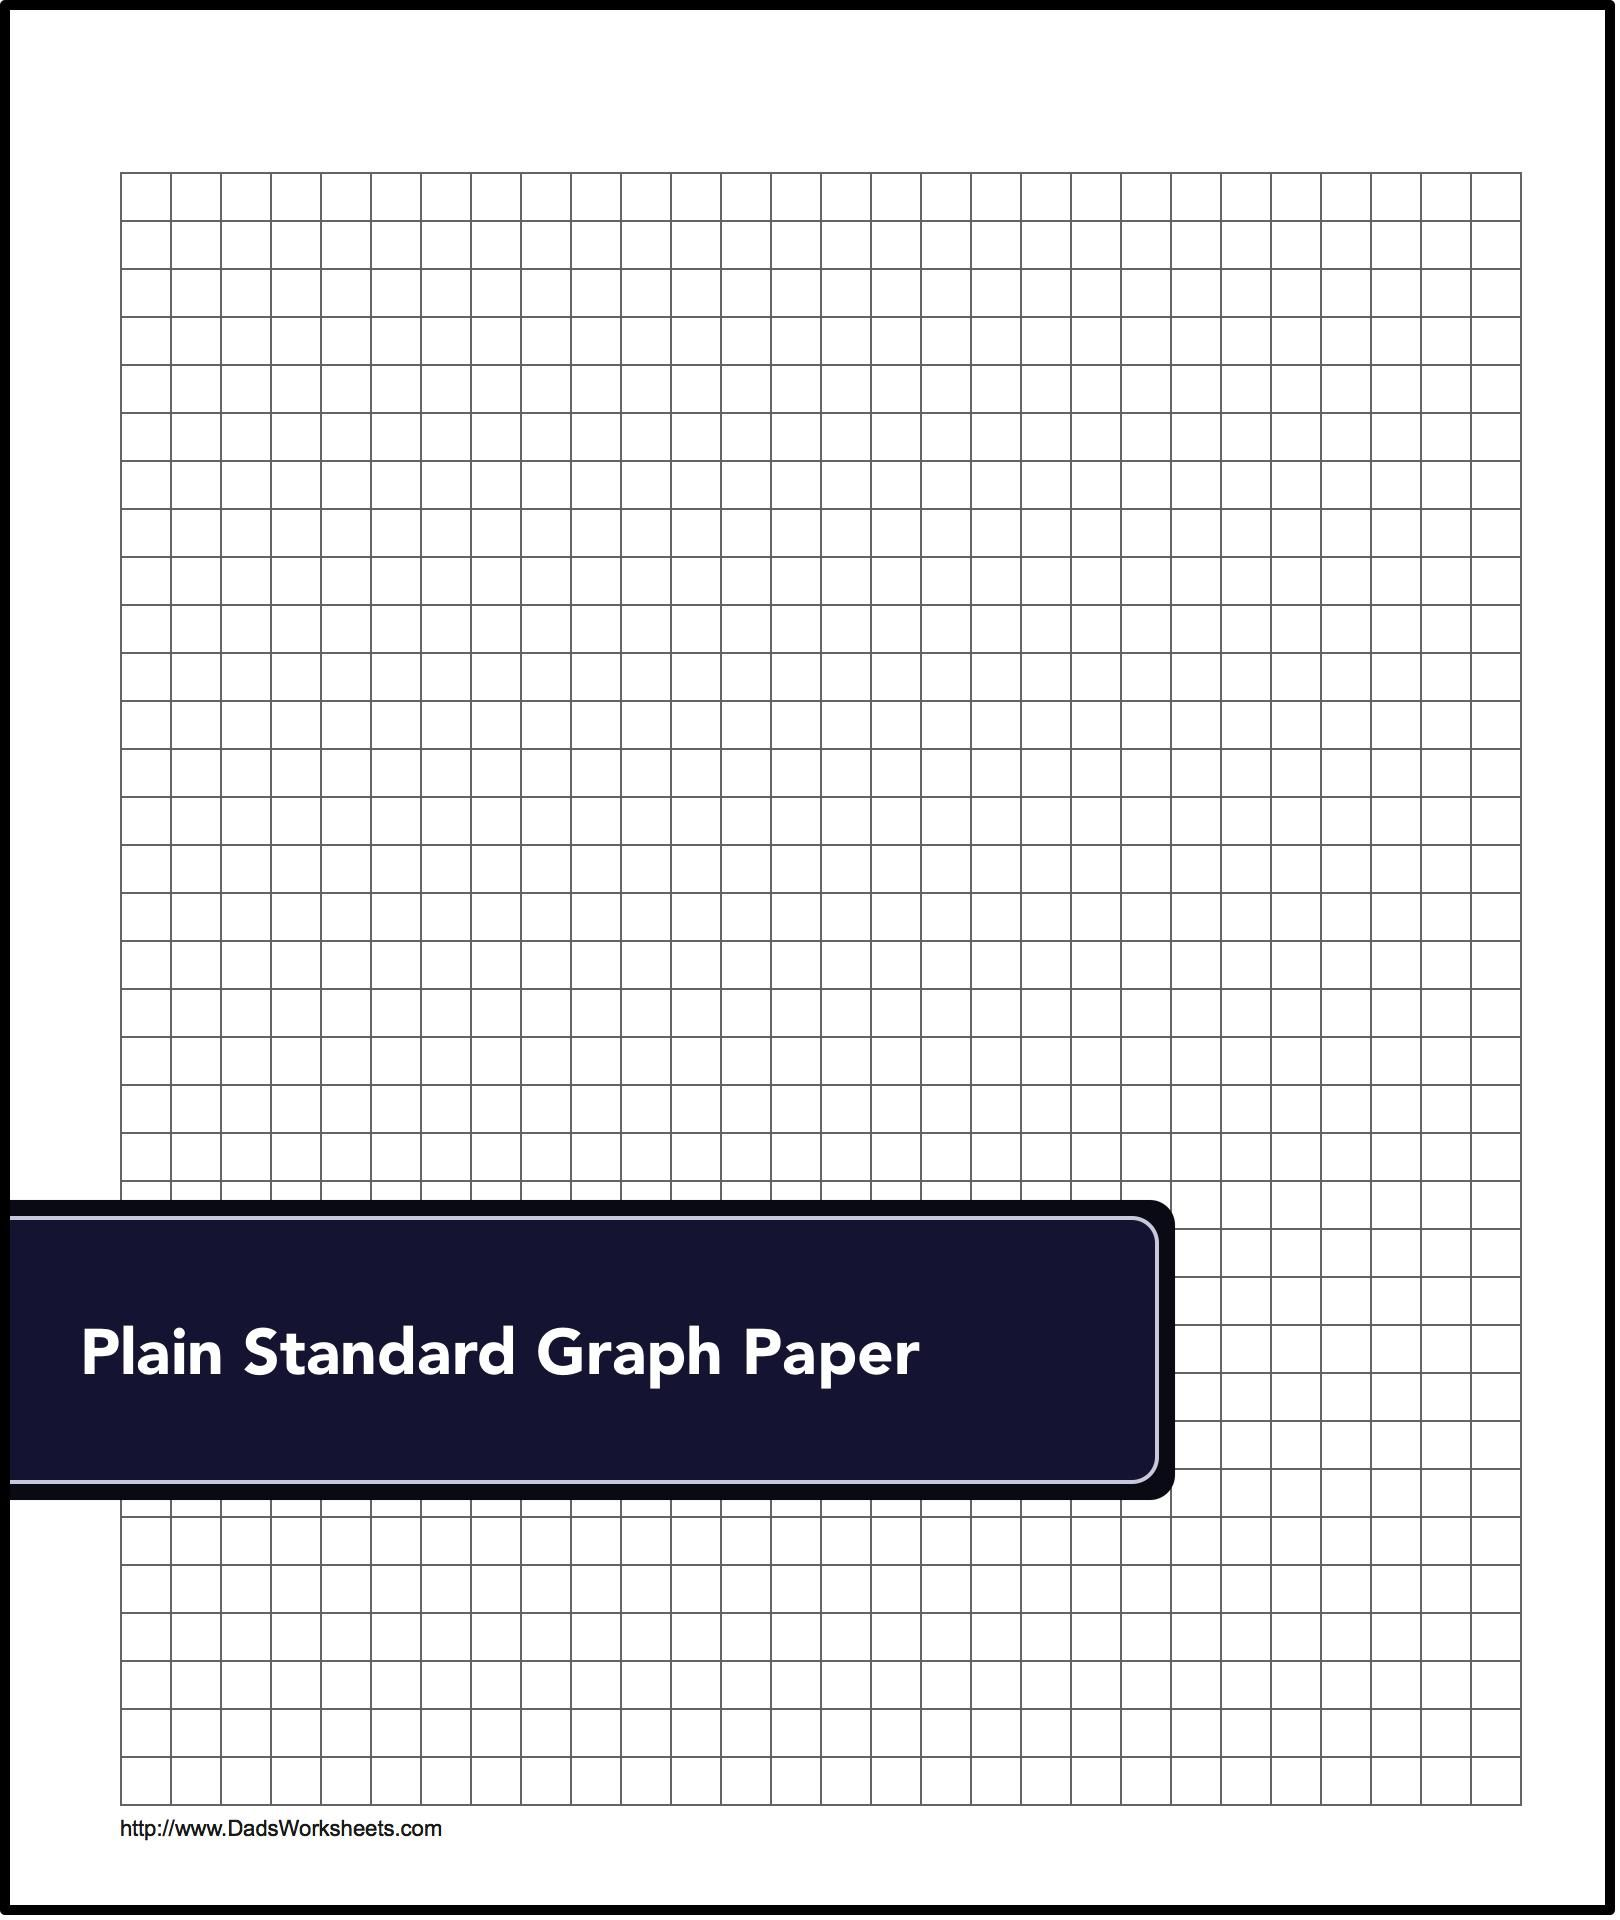 Picture Of A Plain Graph